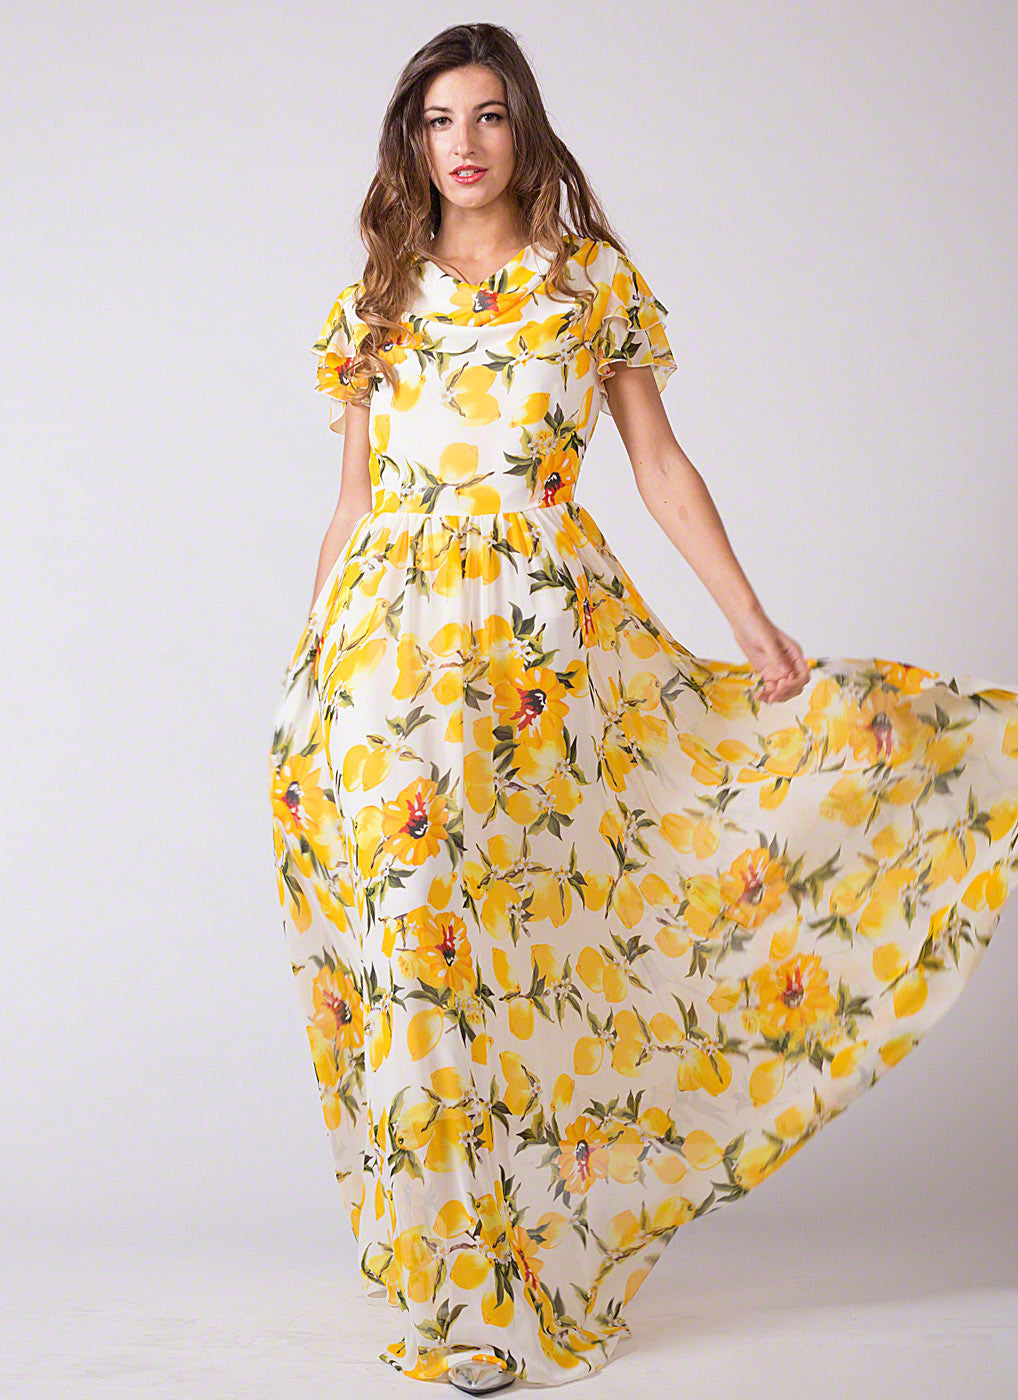 d2ac8730dc0 Sleeveless White and Yellow Lemon Print Chiffon Maxi Length Cocktail Dress